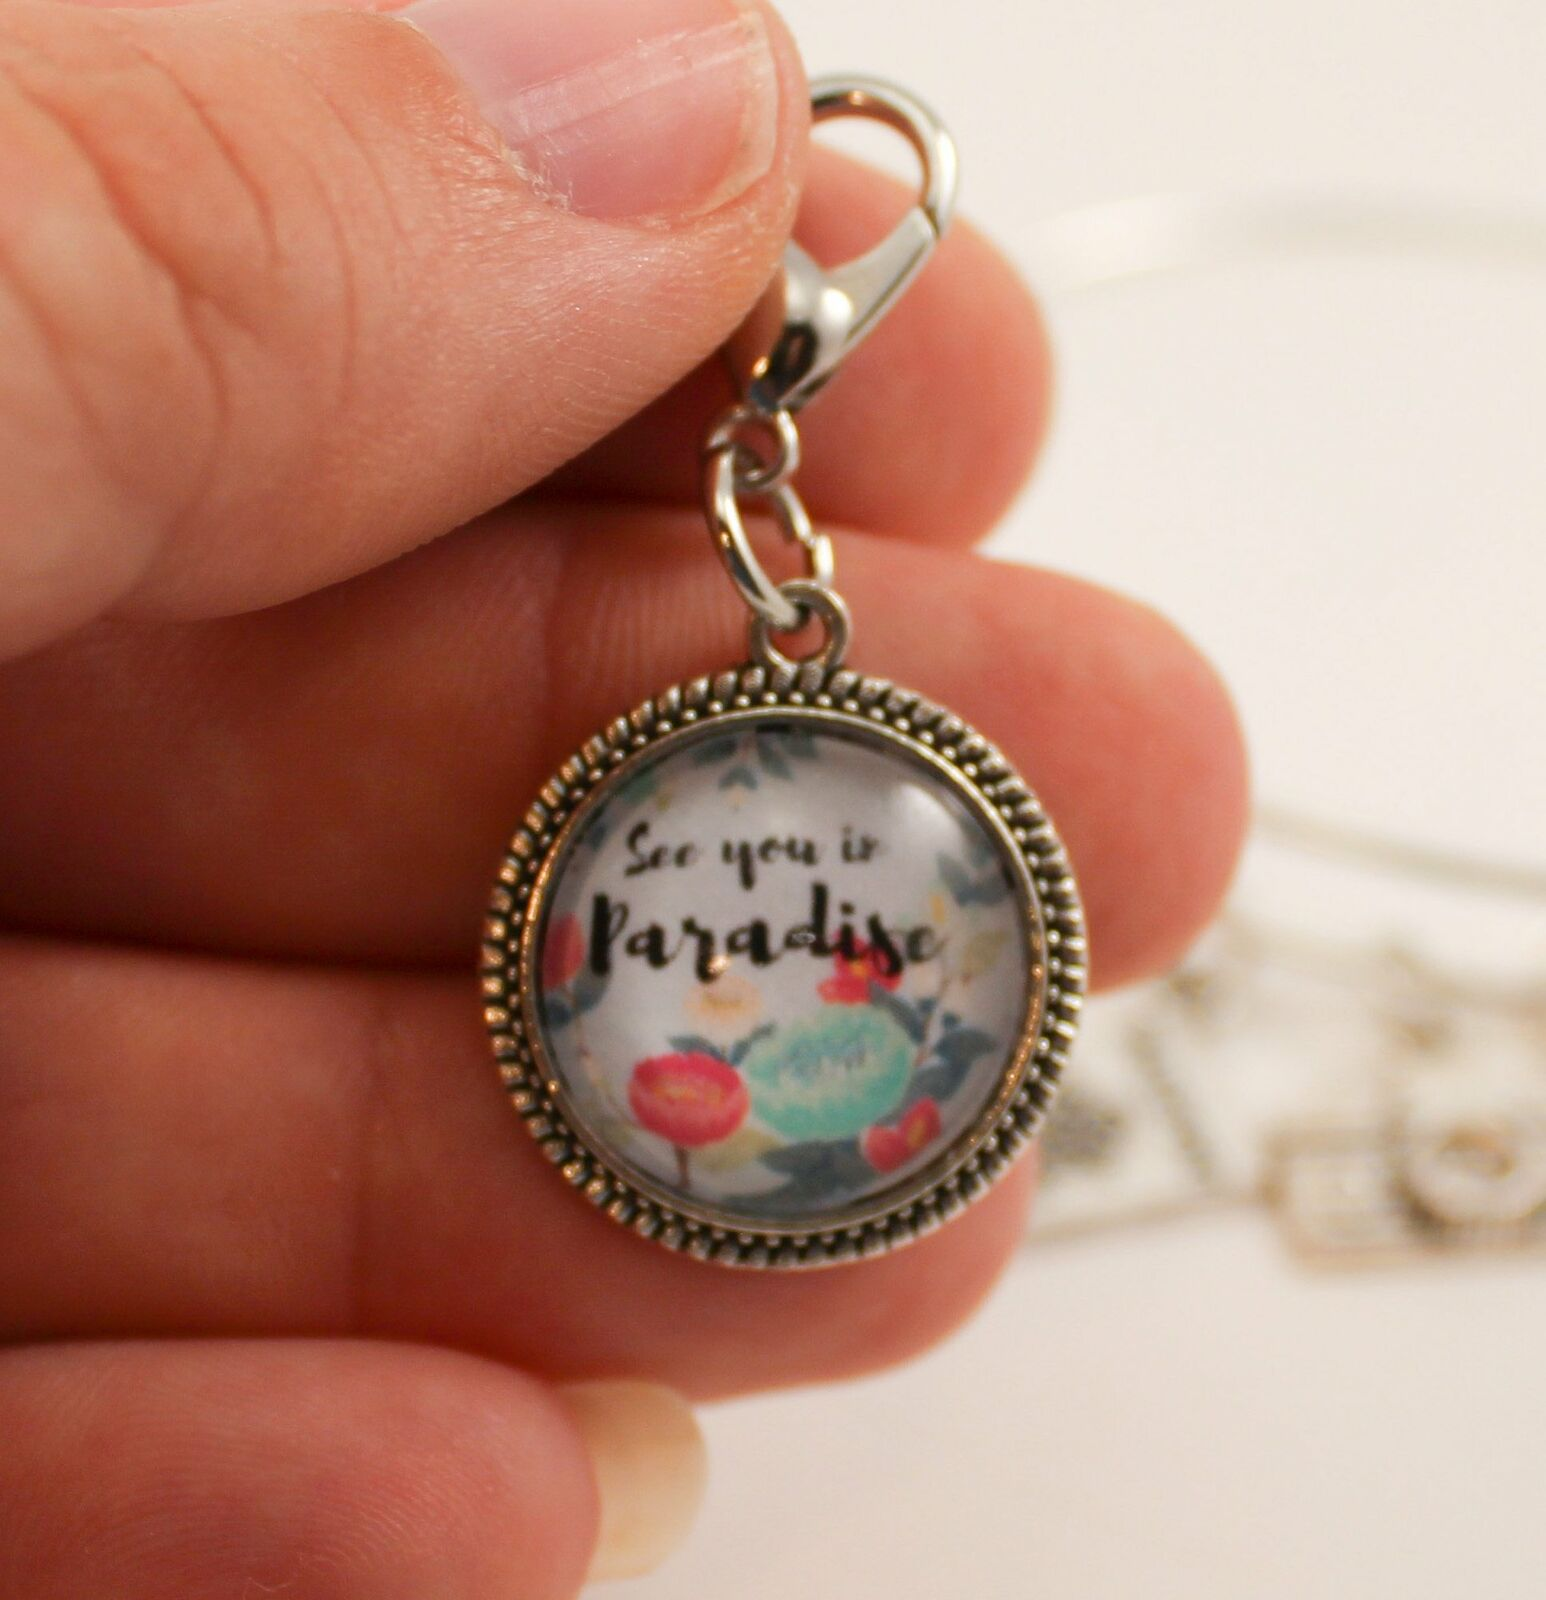 See You In Paradise  Clip-On Charms-JW Perfect International Convention Gifts